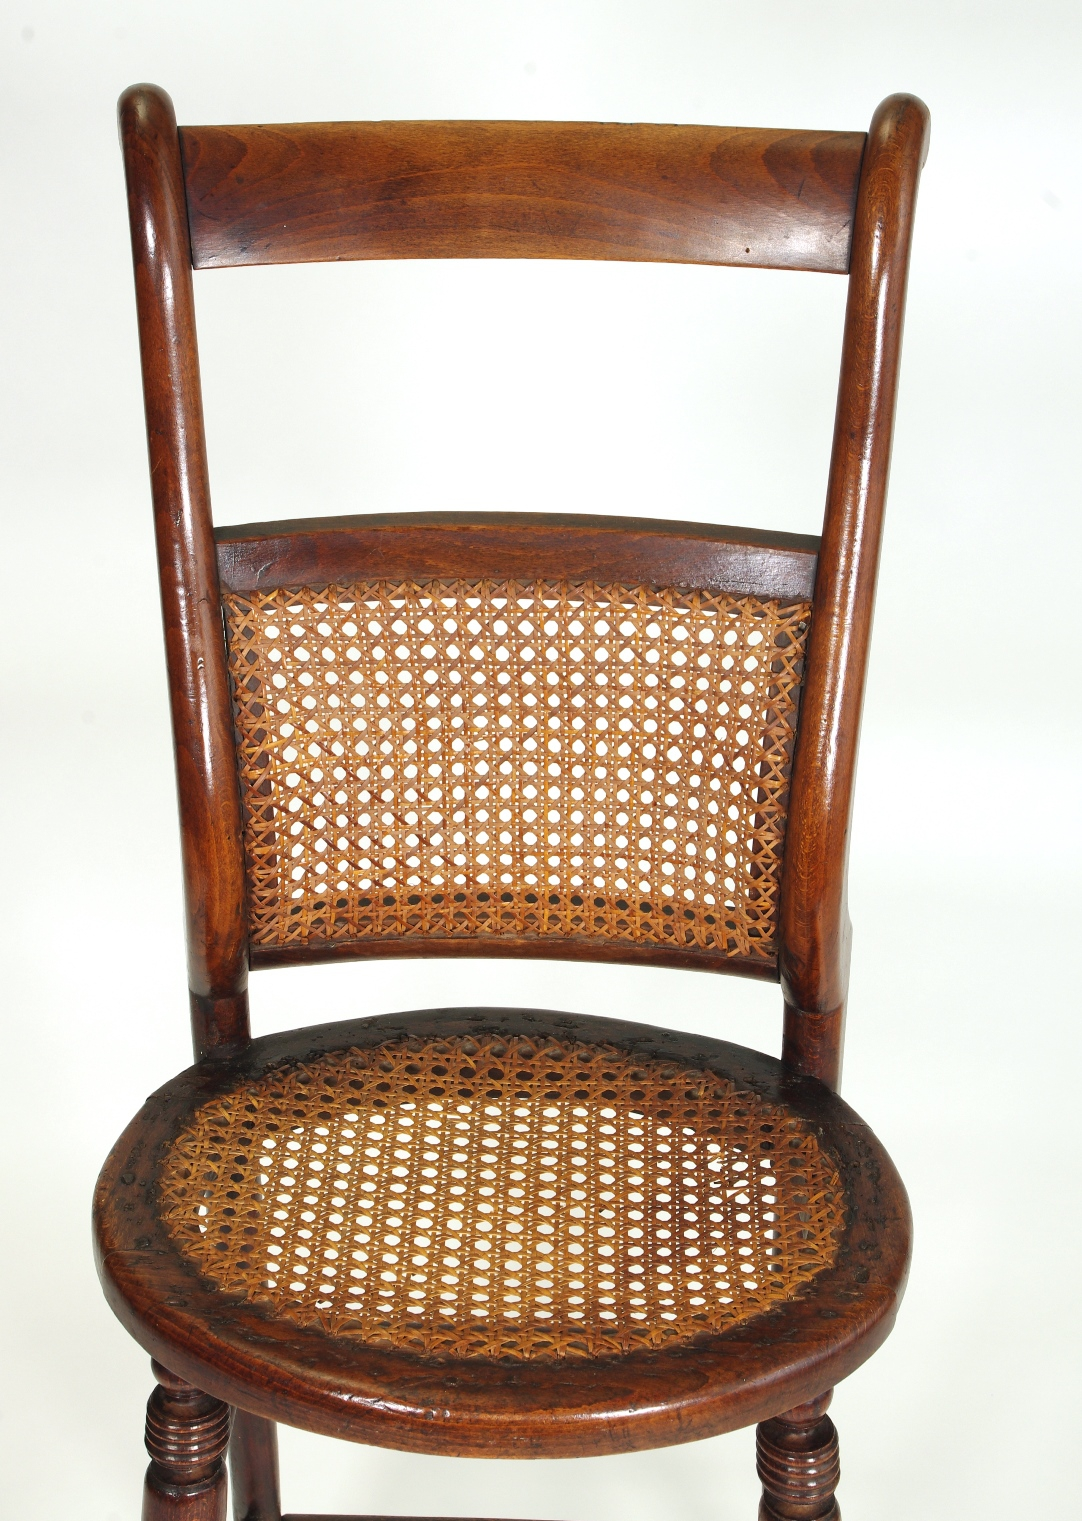 Regency Child's Correction Chair, c. 1830